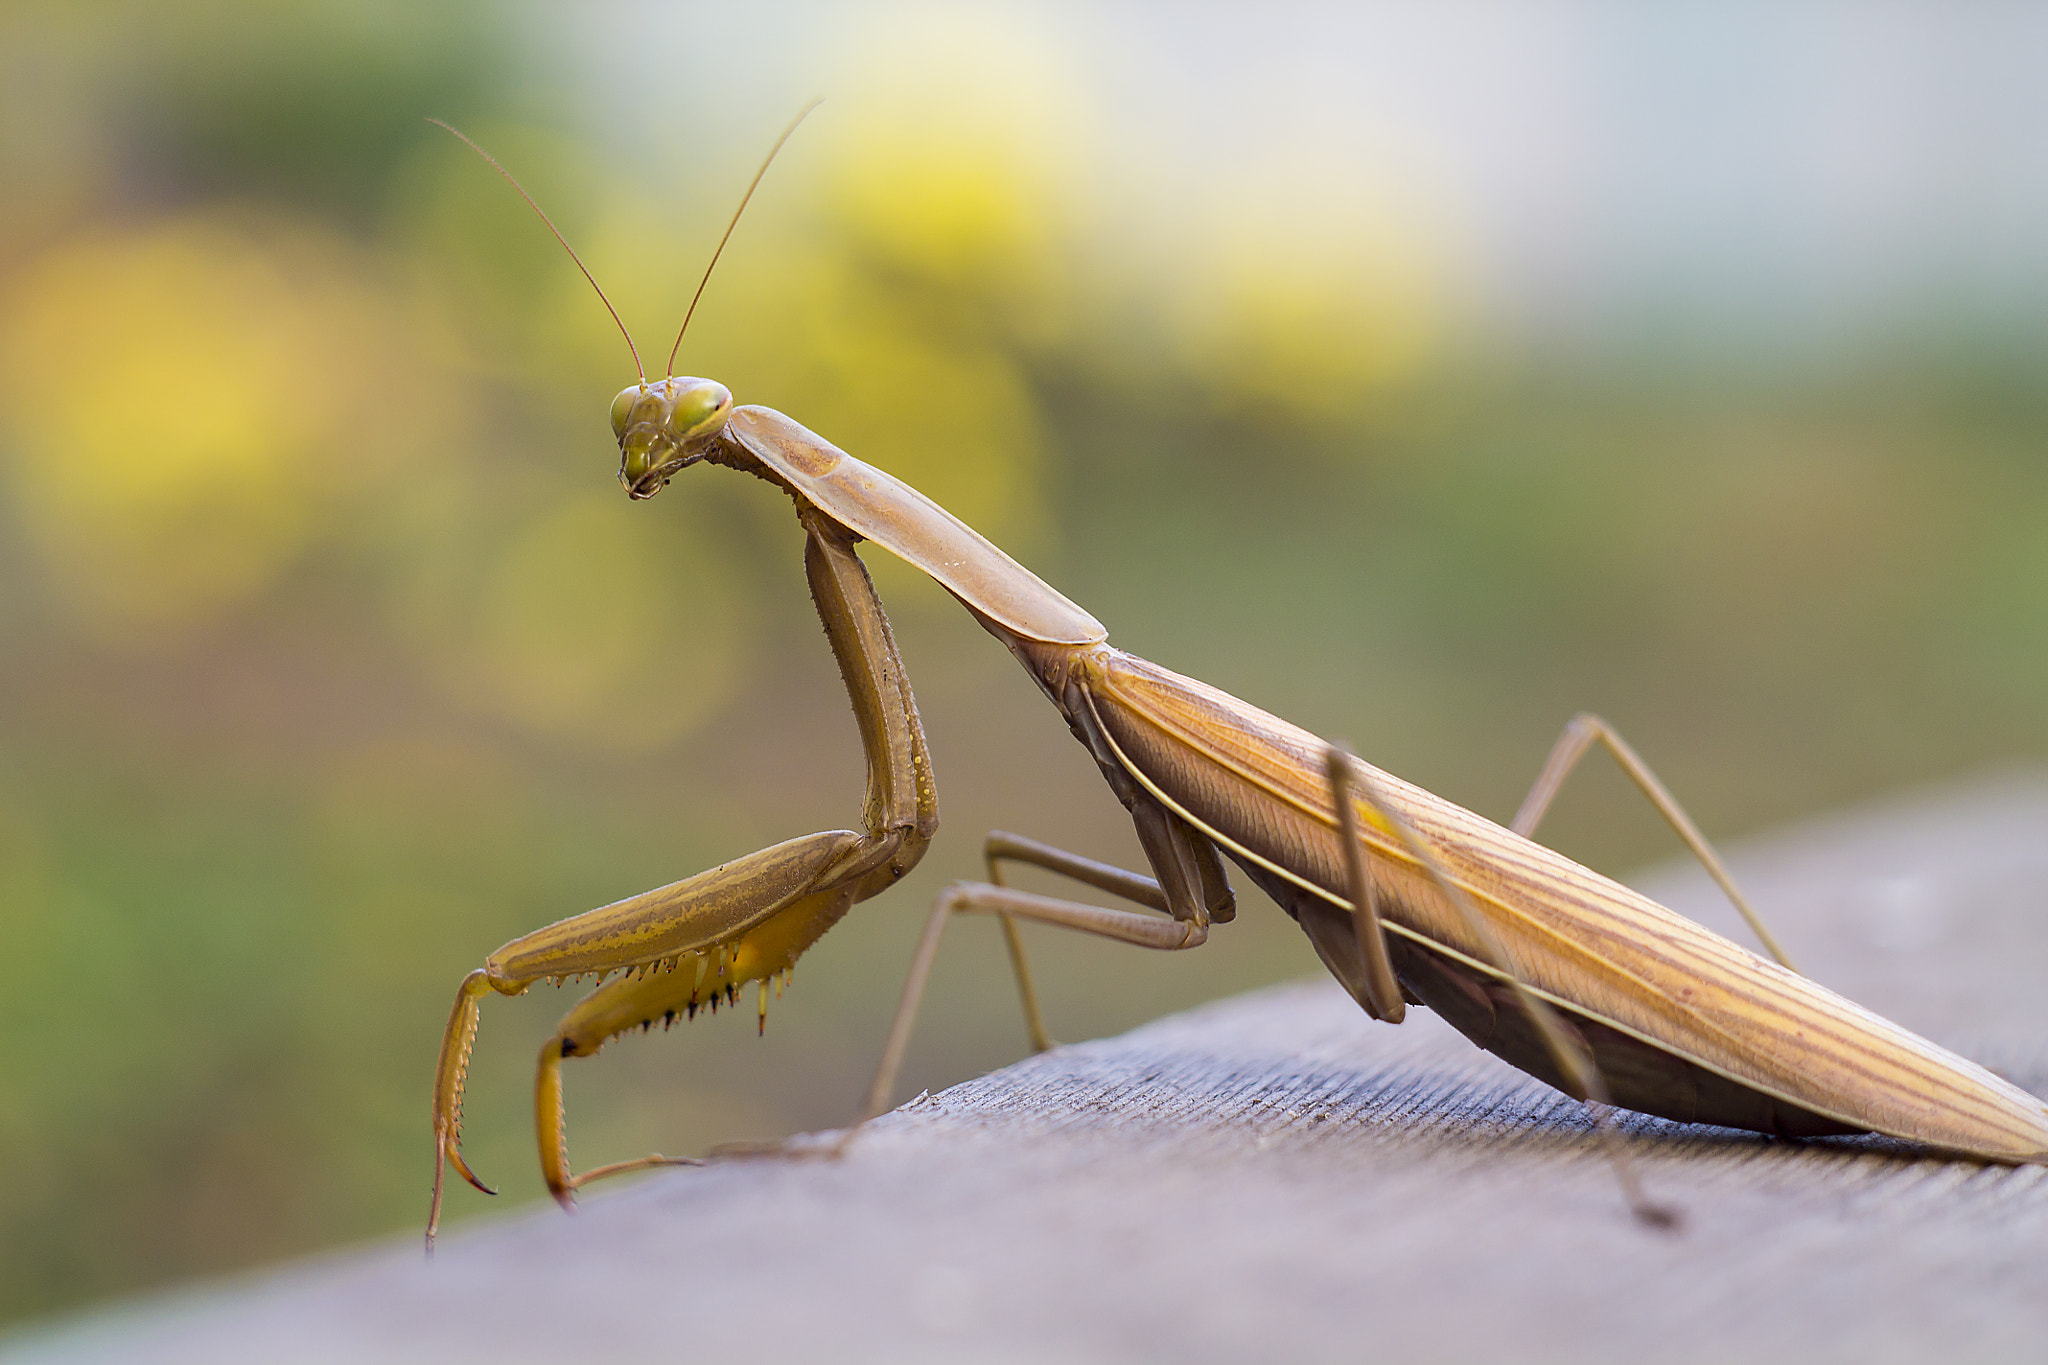 Photograph Mantes =) by Владимир Нестерук on 500px